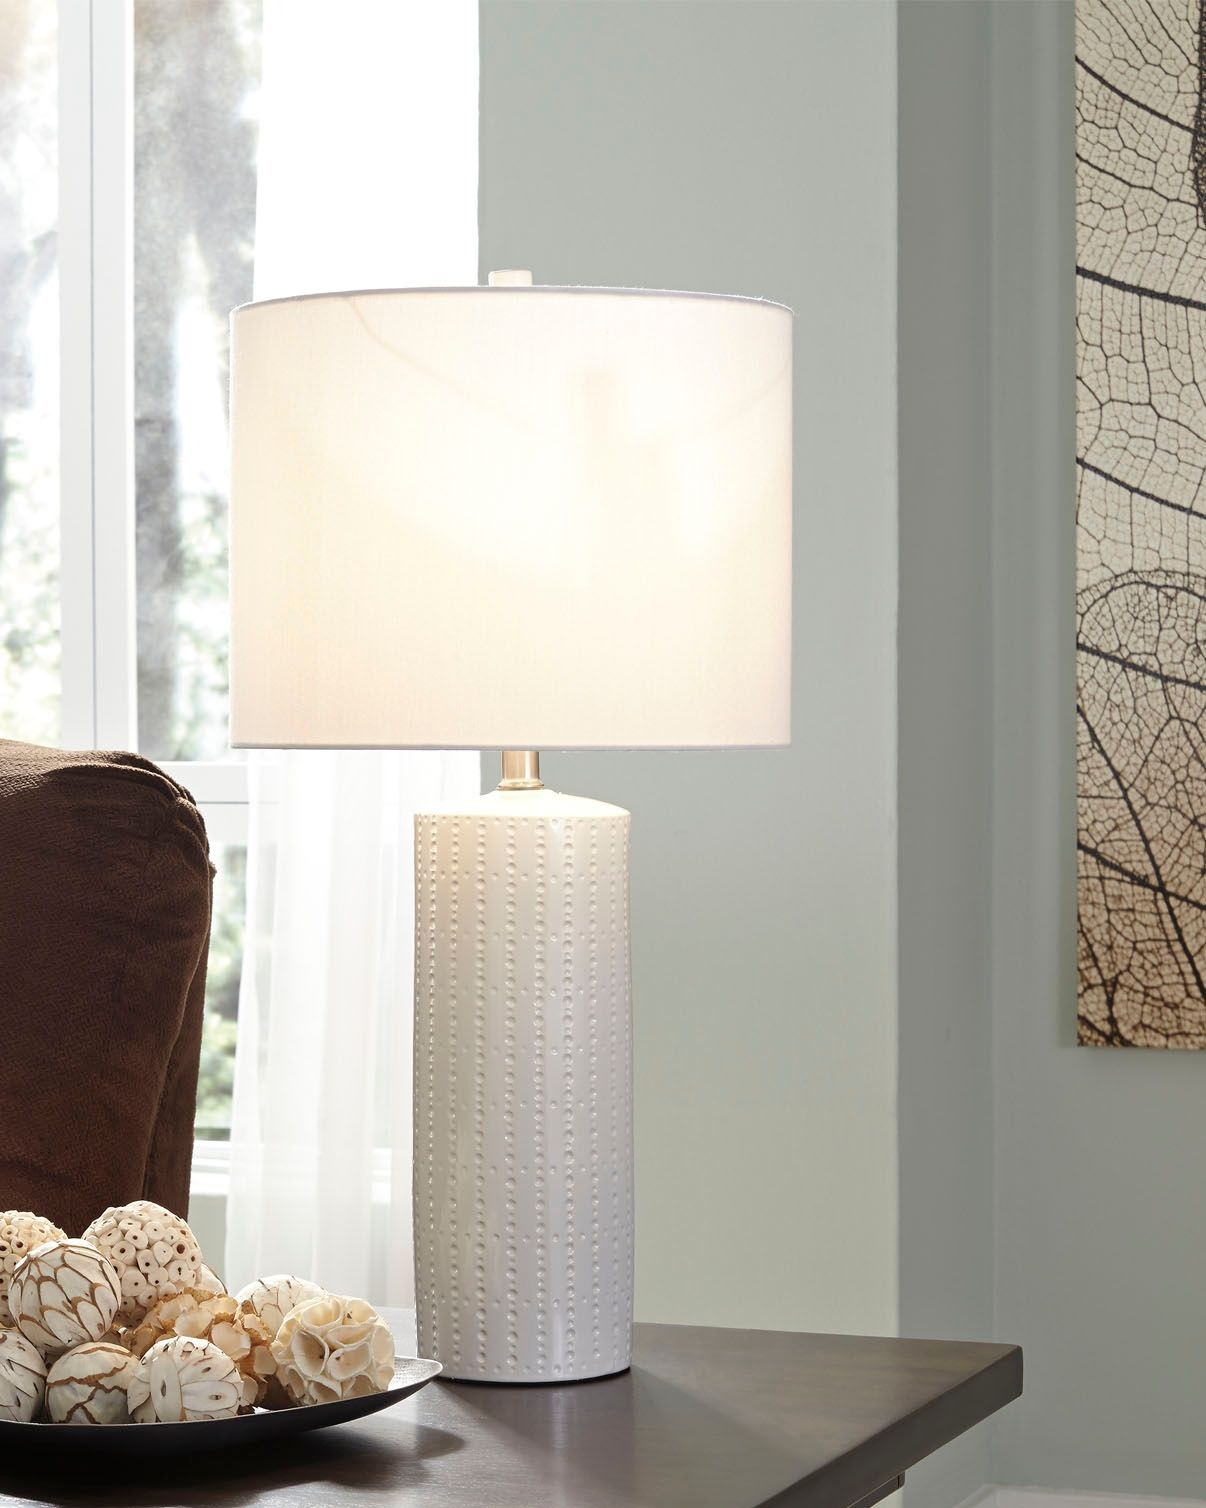 Hanging Lamps To Add Light To Any Room Ceramic Table Lamps